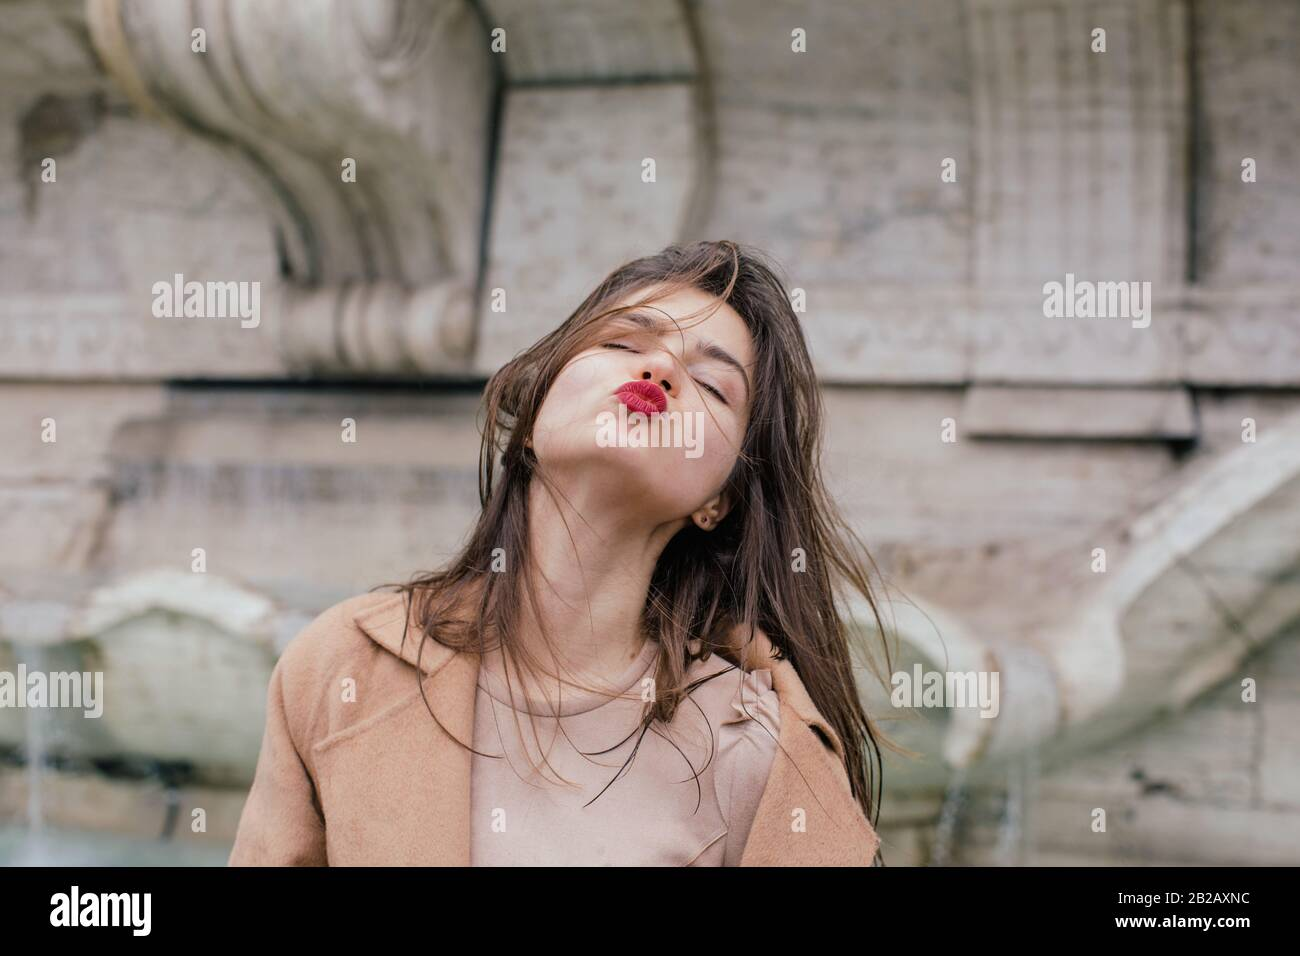 Woman puckering up and blowing a kiss, Rome, Lazio, Italy Stock Photo